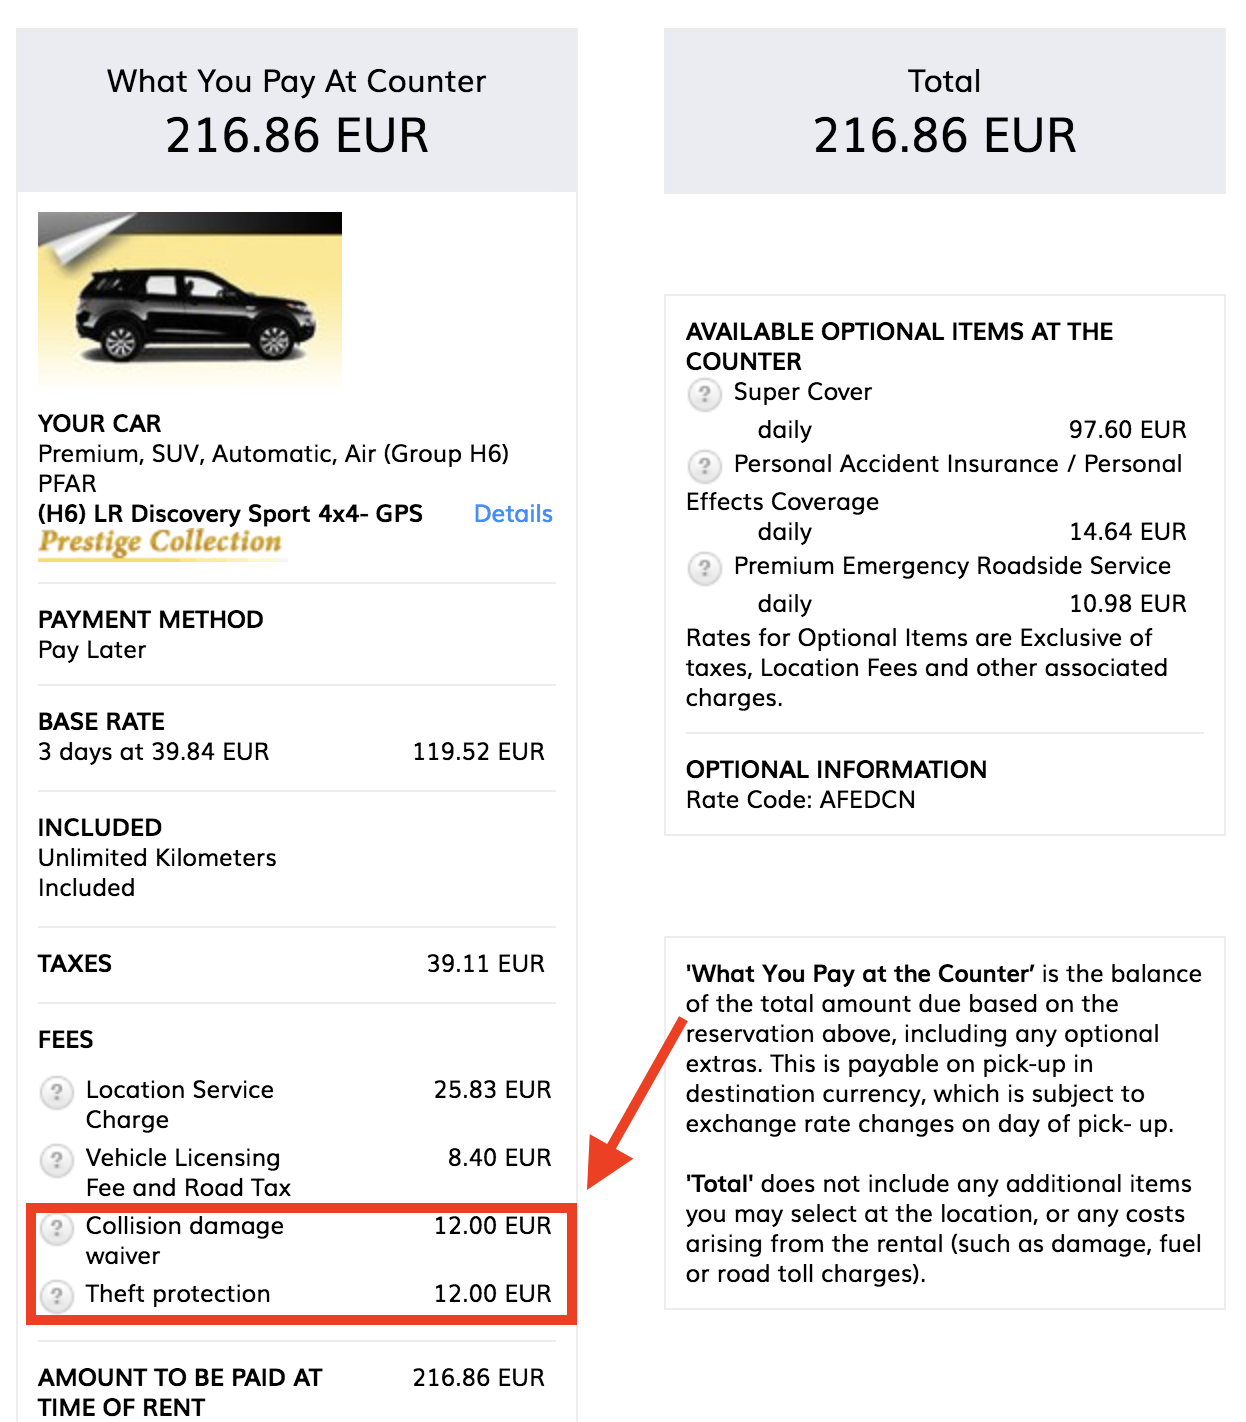 A Quick Primer on Rental Car Insurance Abroad